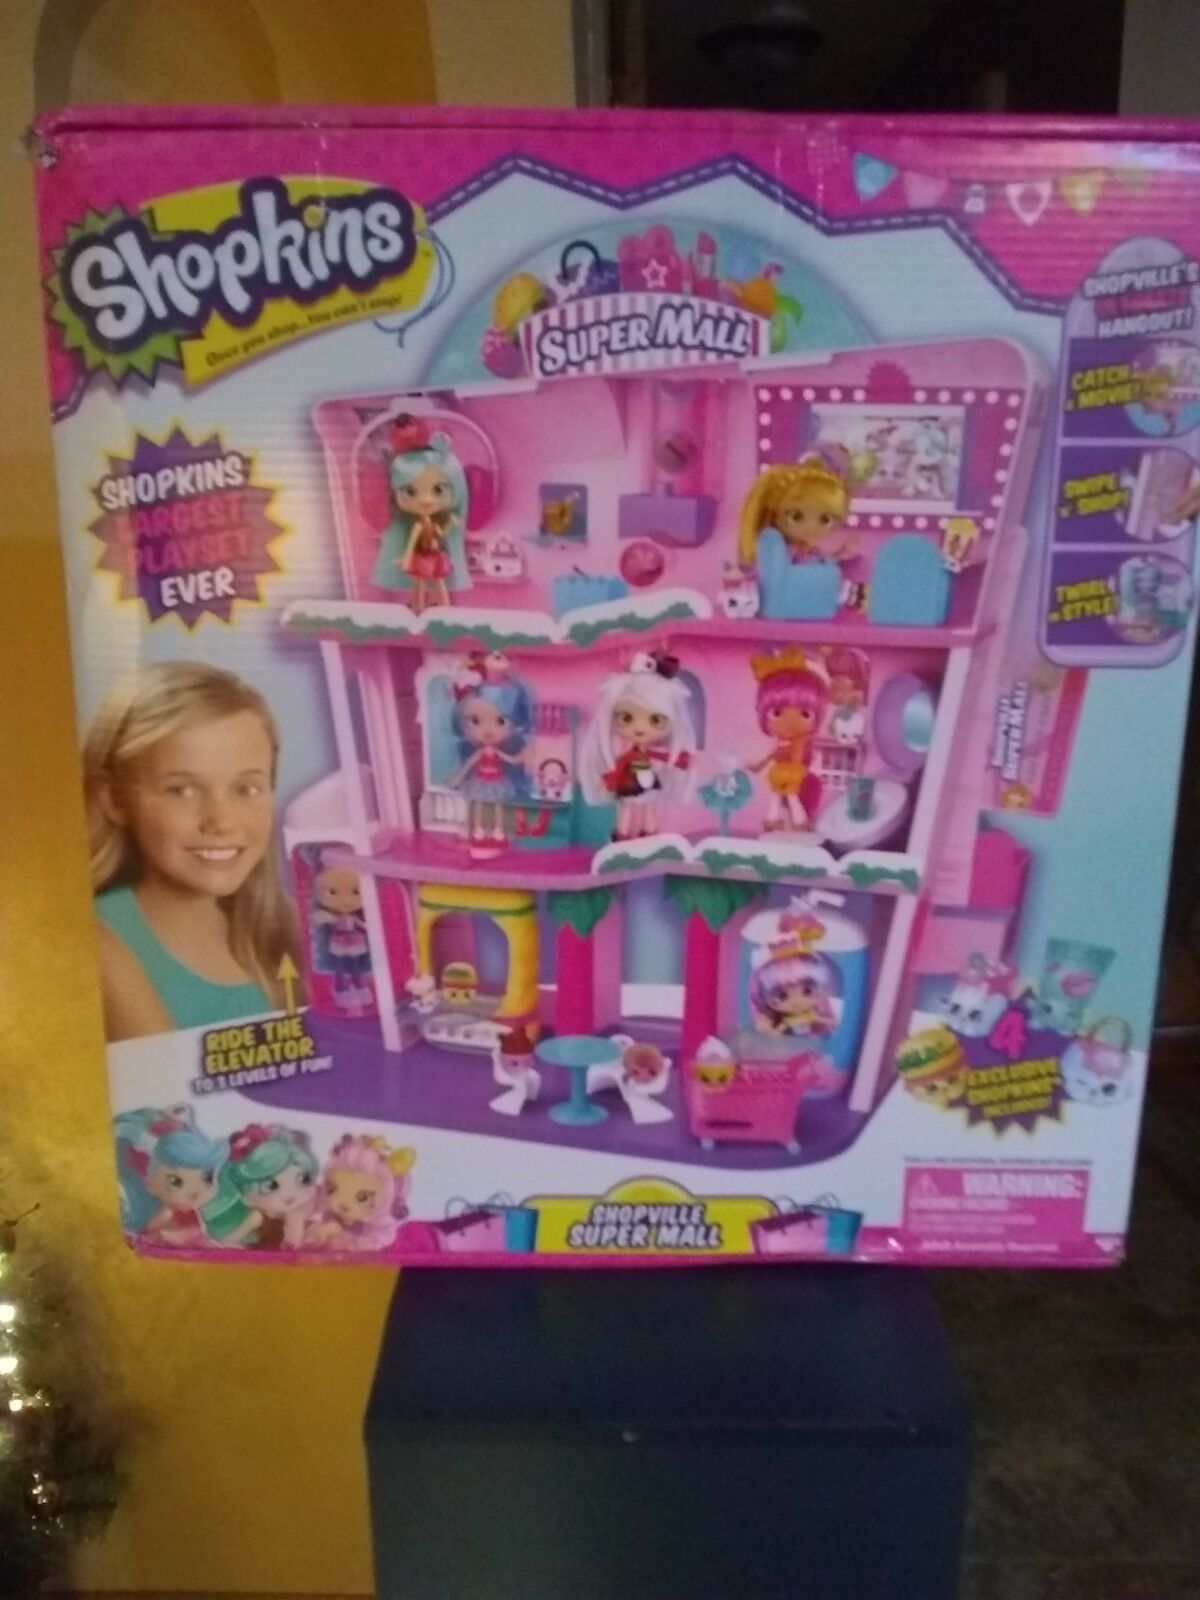 SHOPKINS SHOPPIES SHOPVILLE SUPER MALL LARGEST PLAYSET DOLL HOUSE NEW